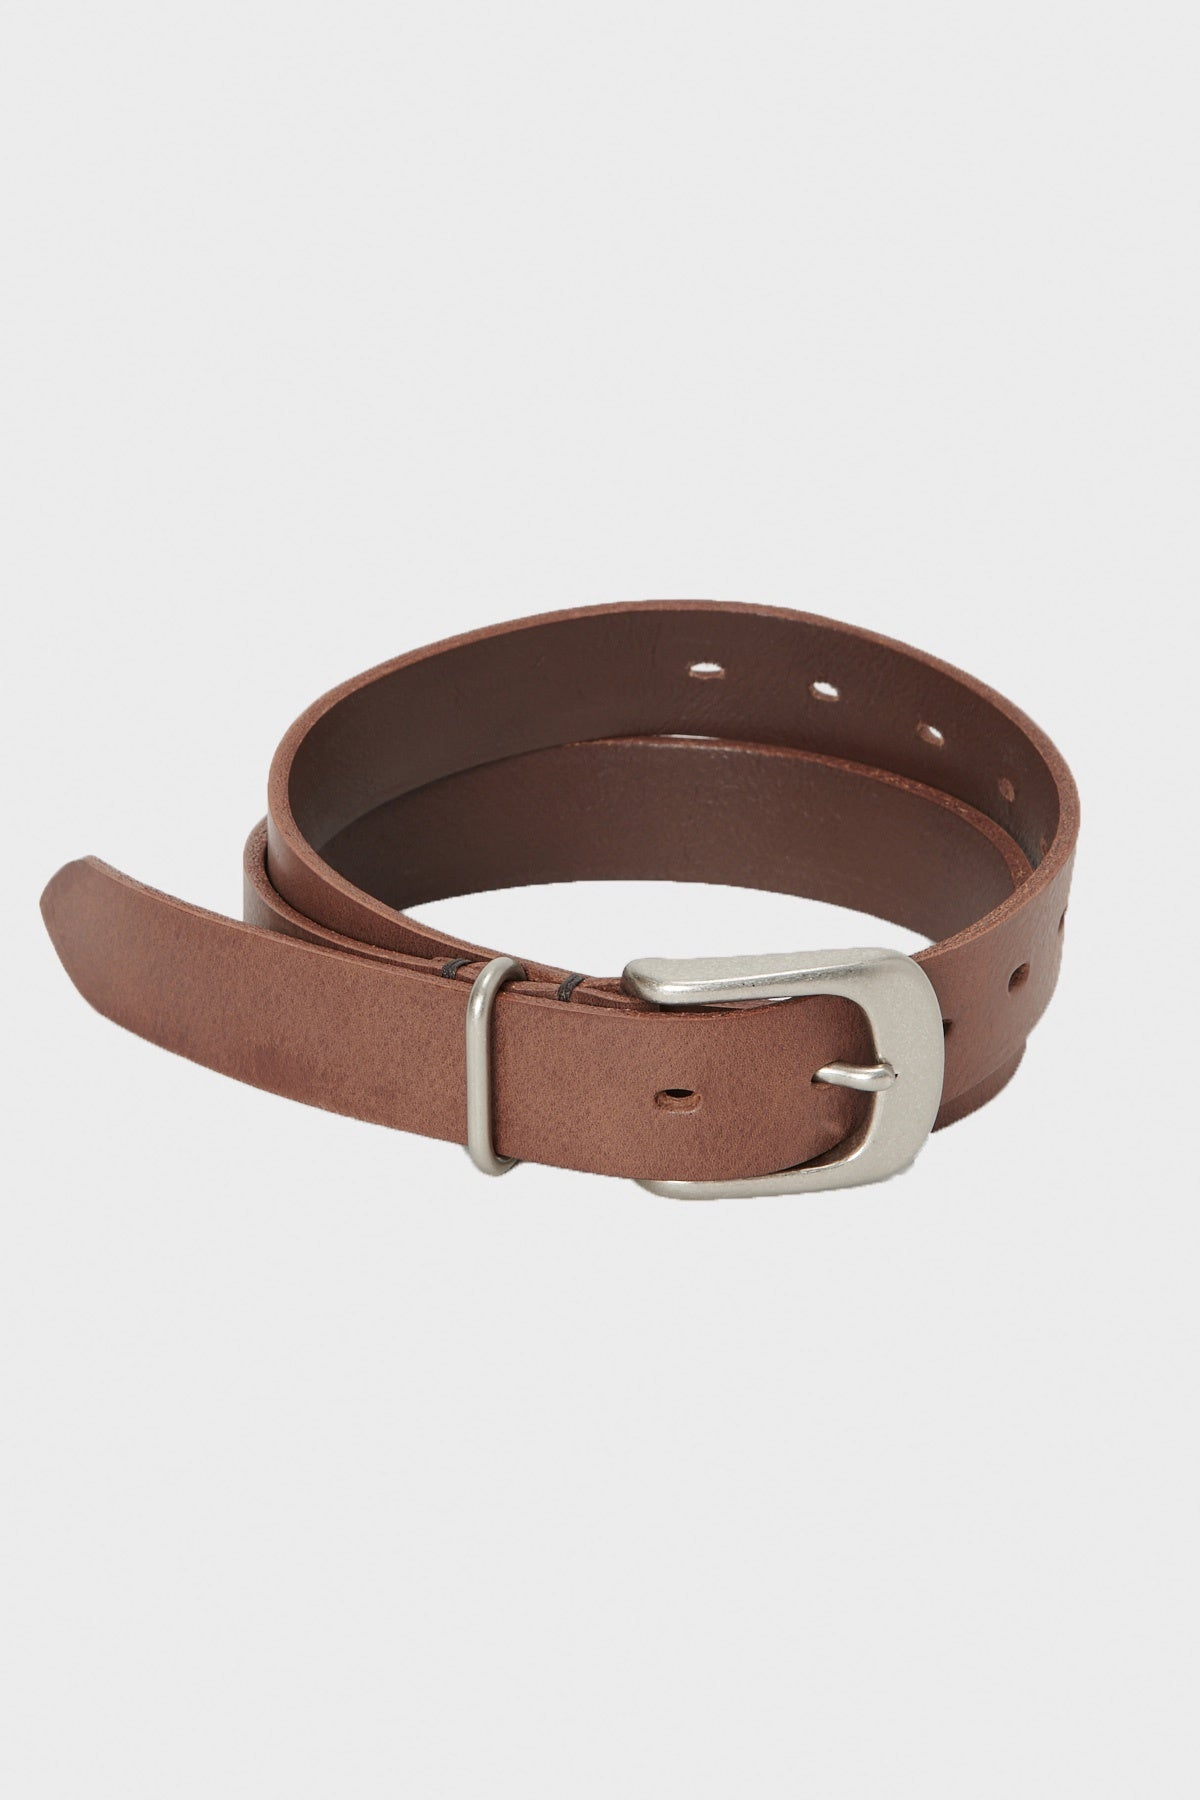 Hender Scheme - Shrink Shoulder Belt - Dark Brown/AS - Canoe Club